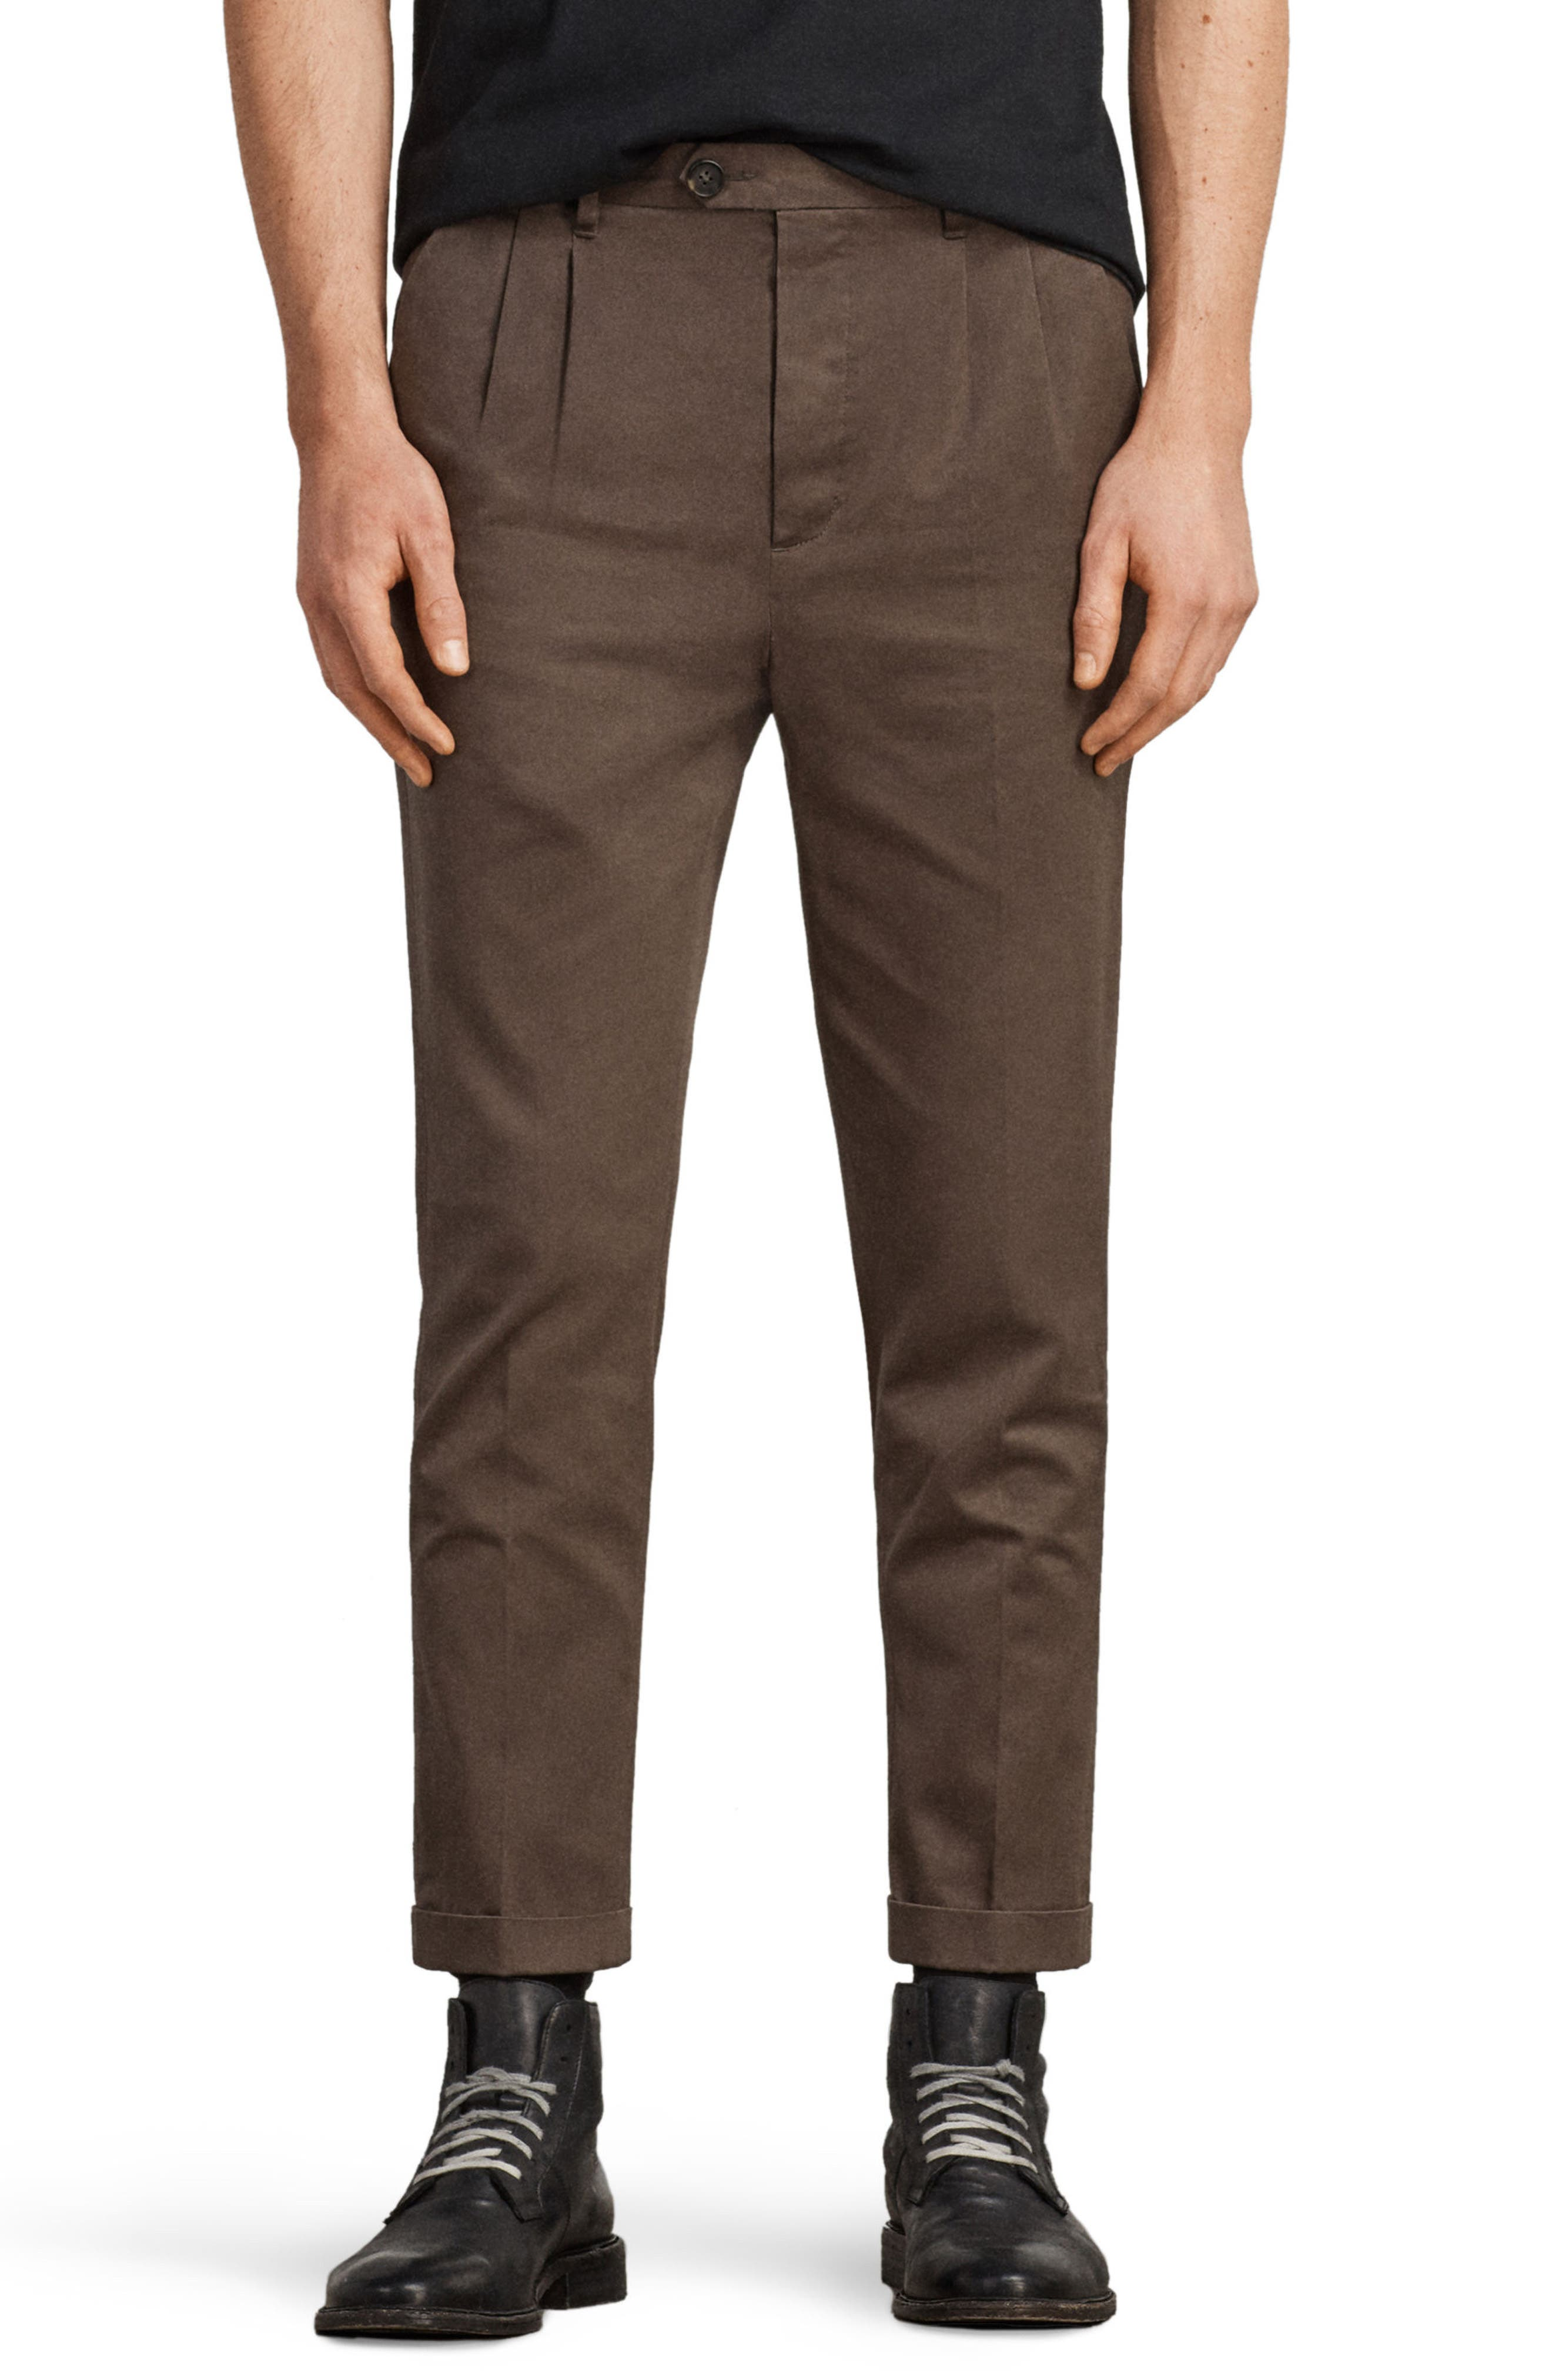 Salco Slim Fit Chino Pants,                         Main,                         color, Khaki Green